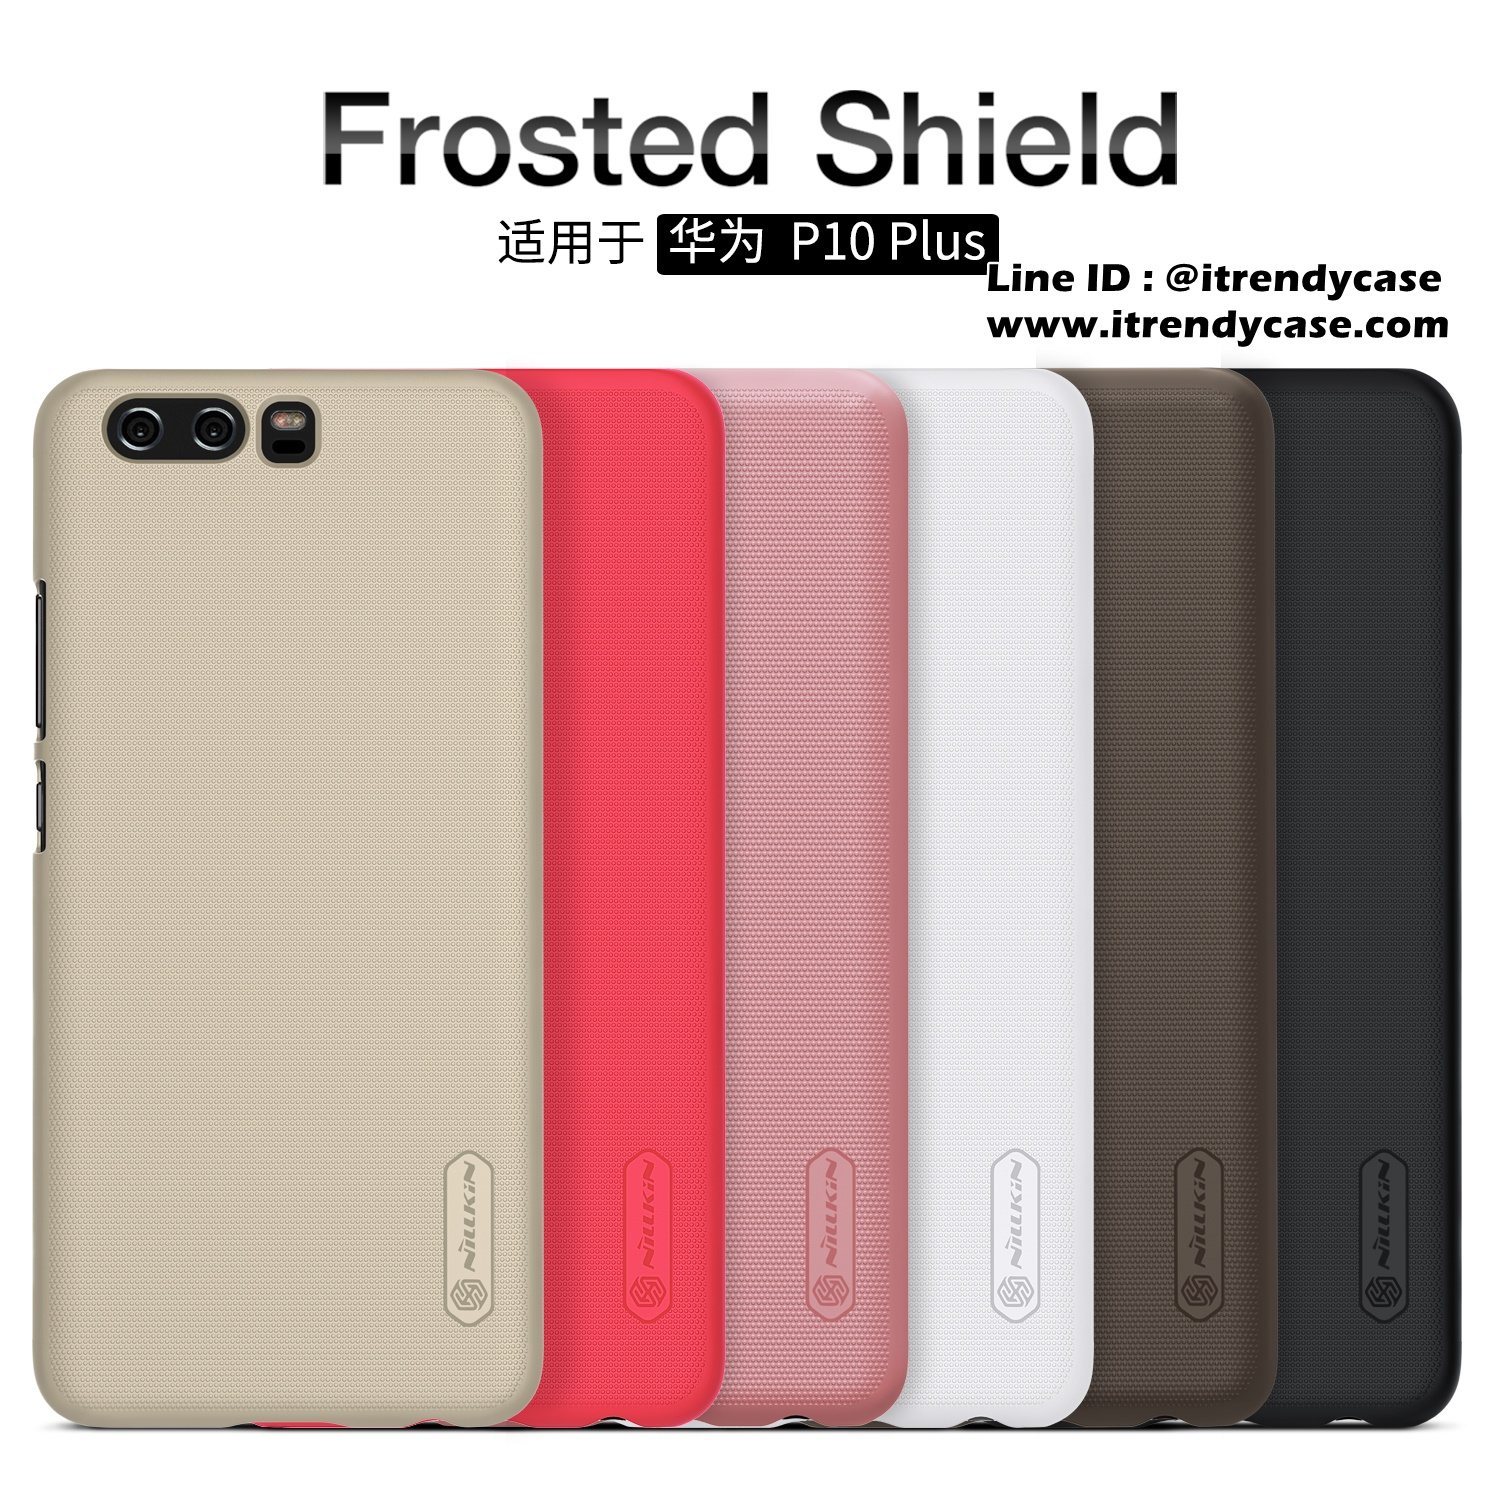 Huawei P10 Plus - เคสหลัง Nillkin Super Frosted Shield แท้